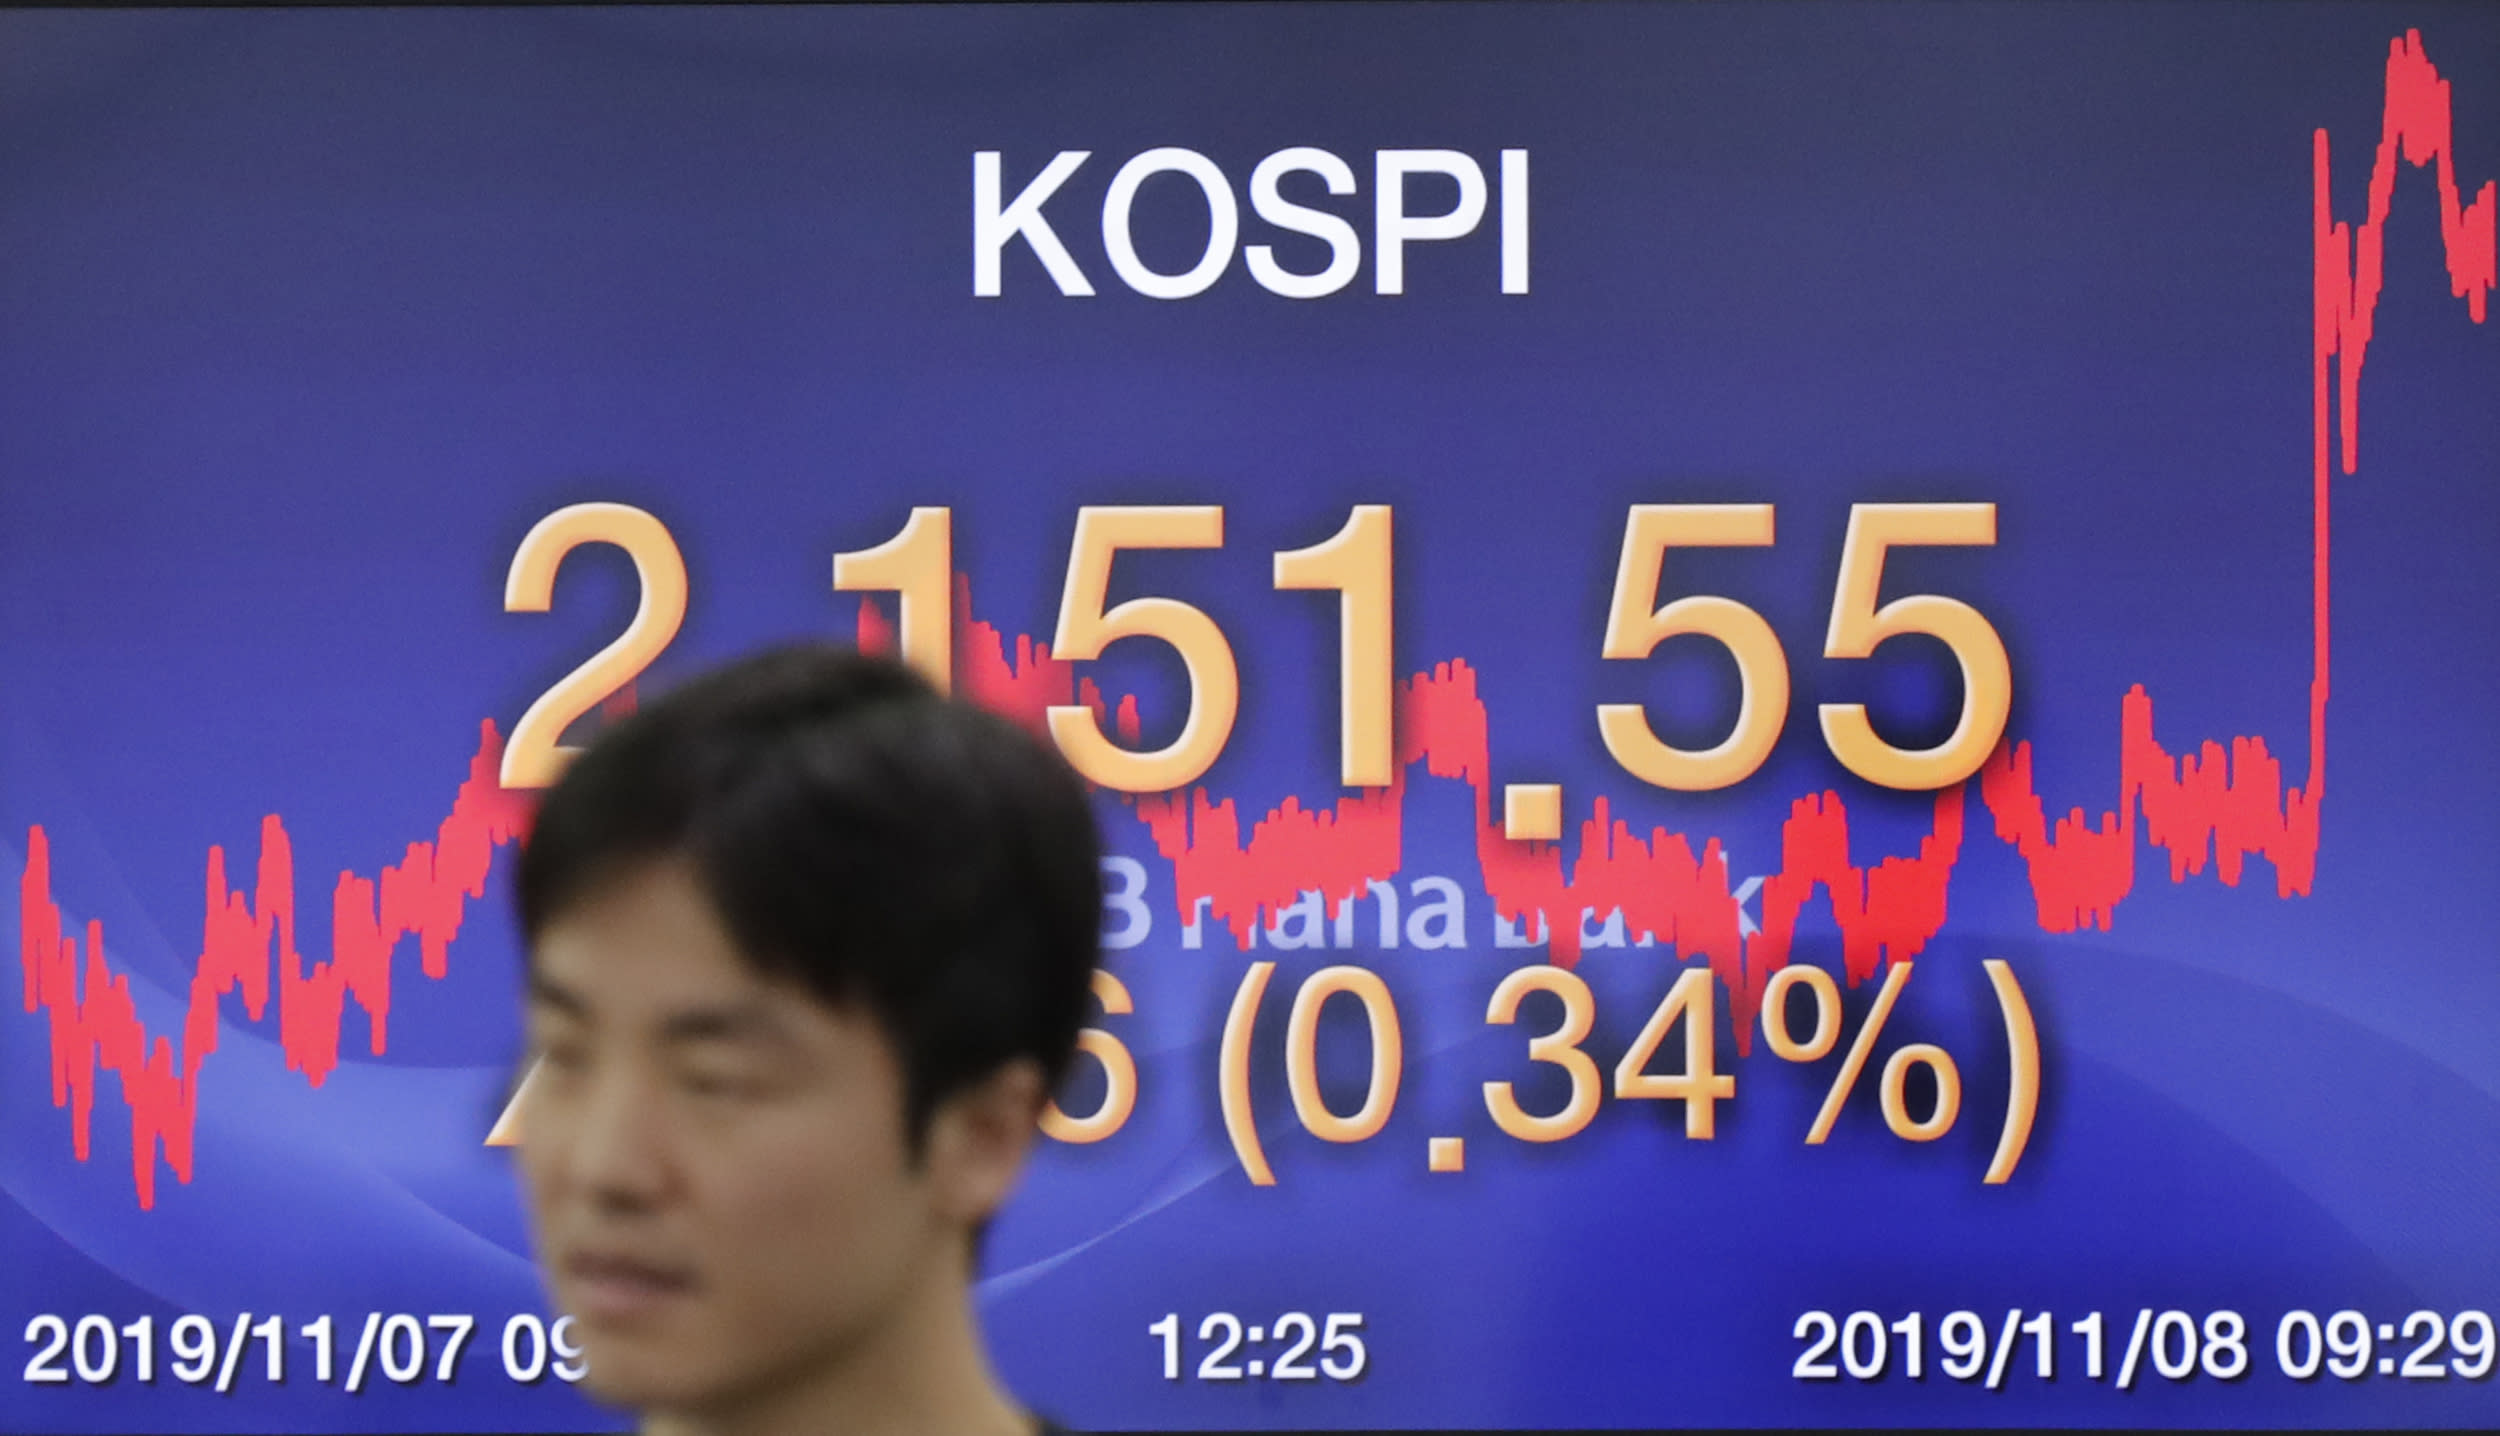 A currency trader walks by the screen showing the Korea Composite Stock Price Index (KOSPI) at the foreign exchange dealing room in Seoul, South Korea, Friday, Nov. 8, 2019. Asian stock markets were mixed Friday amid uncertainty about a possible U.S.-Chinese agreement to roll back tariffs in their trade war. (AP Photo/Lee Jin-man)